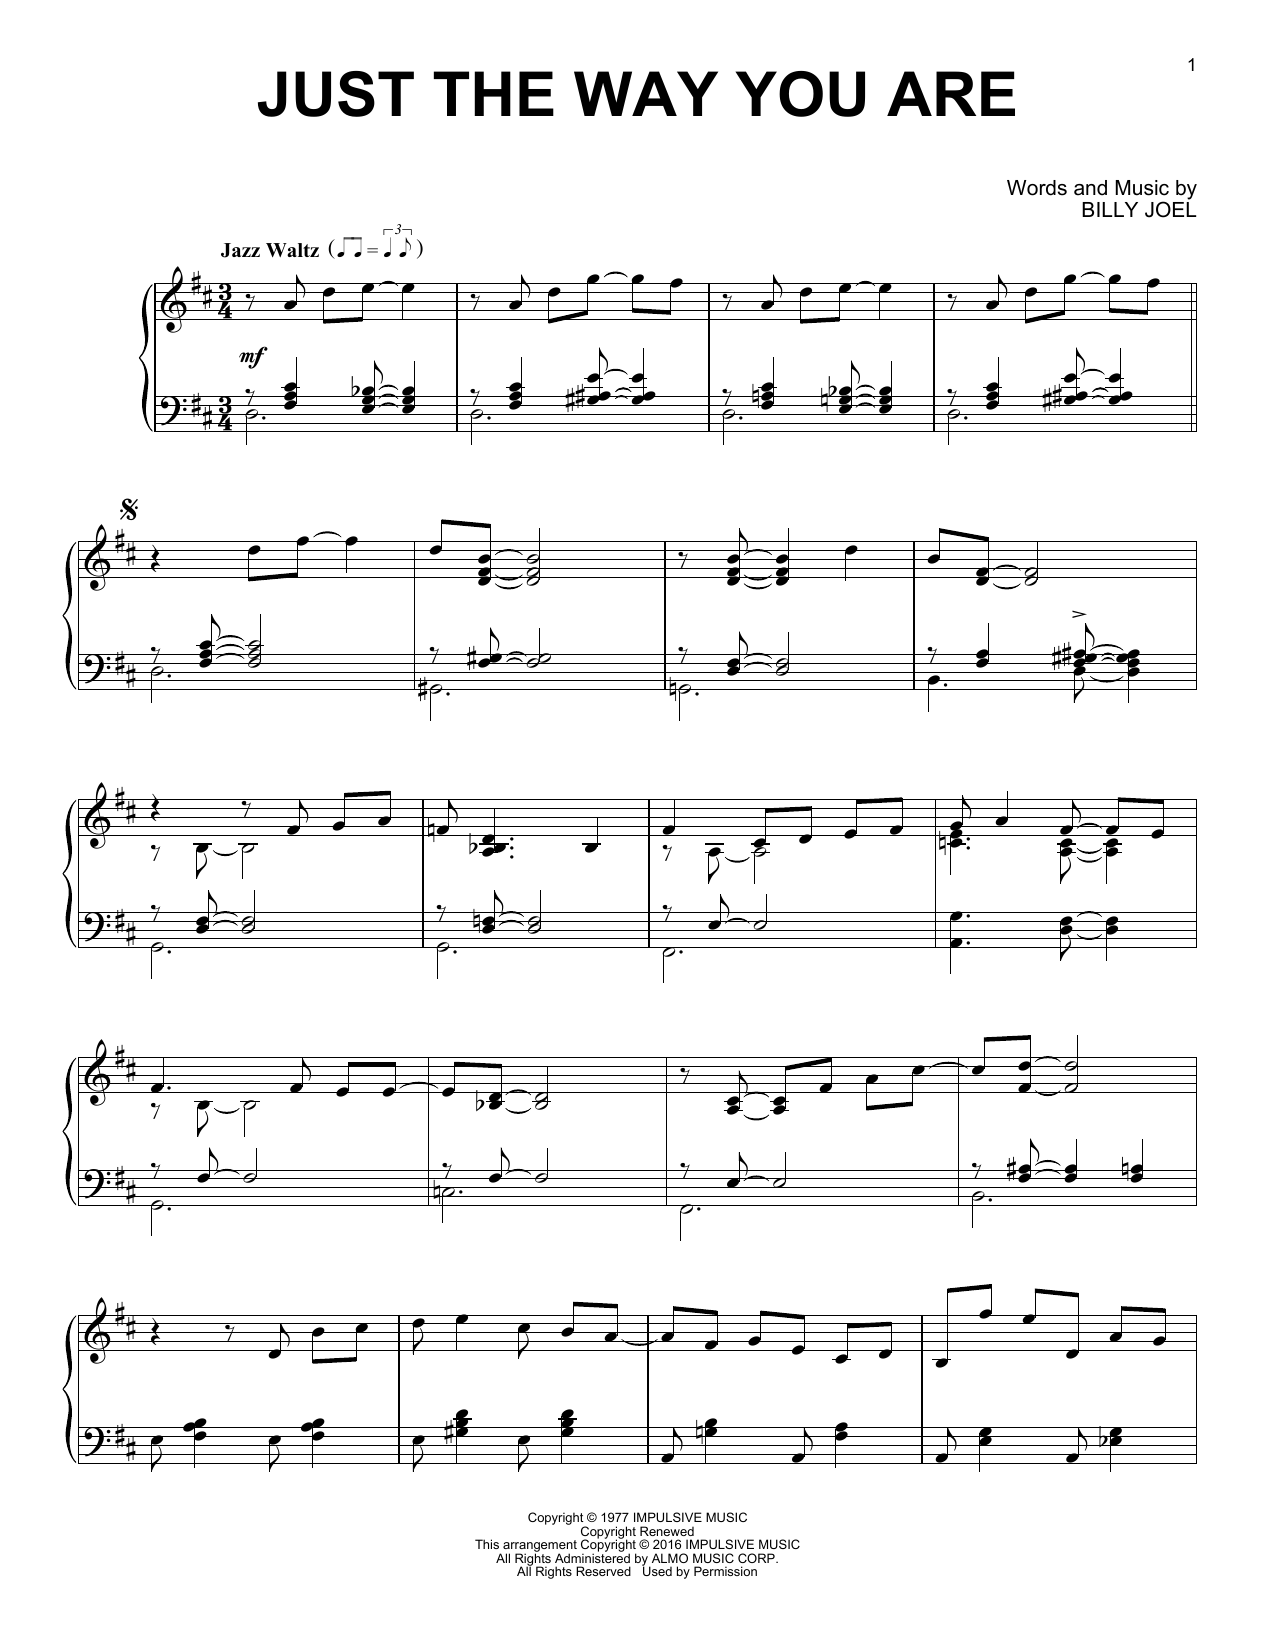 Billy Joel Just The Way You Are [Jazz version] sheet music notes and chords. Download Printable PDF.